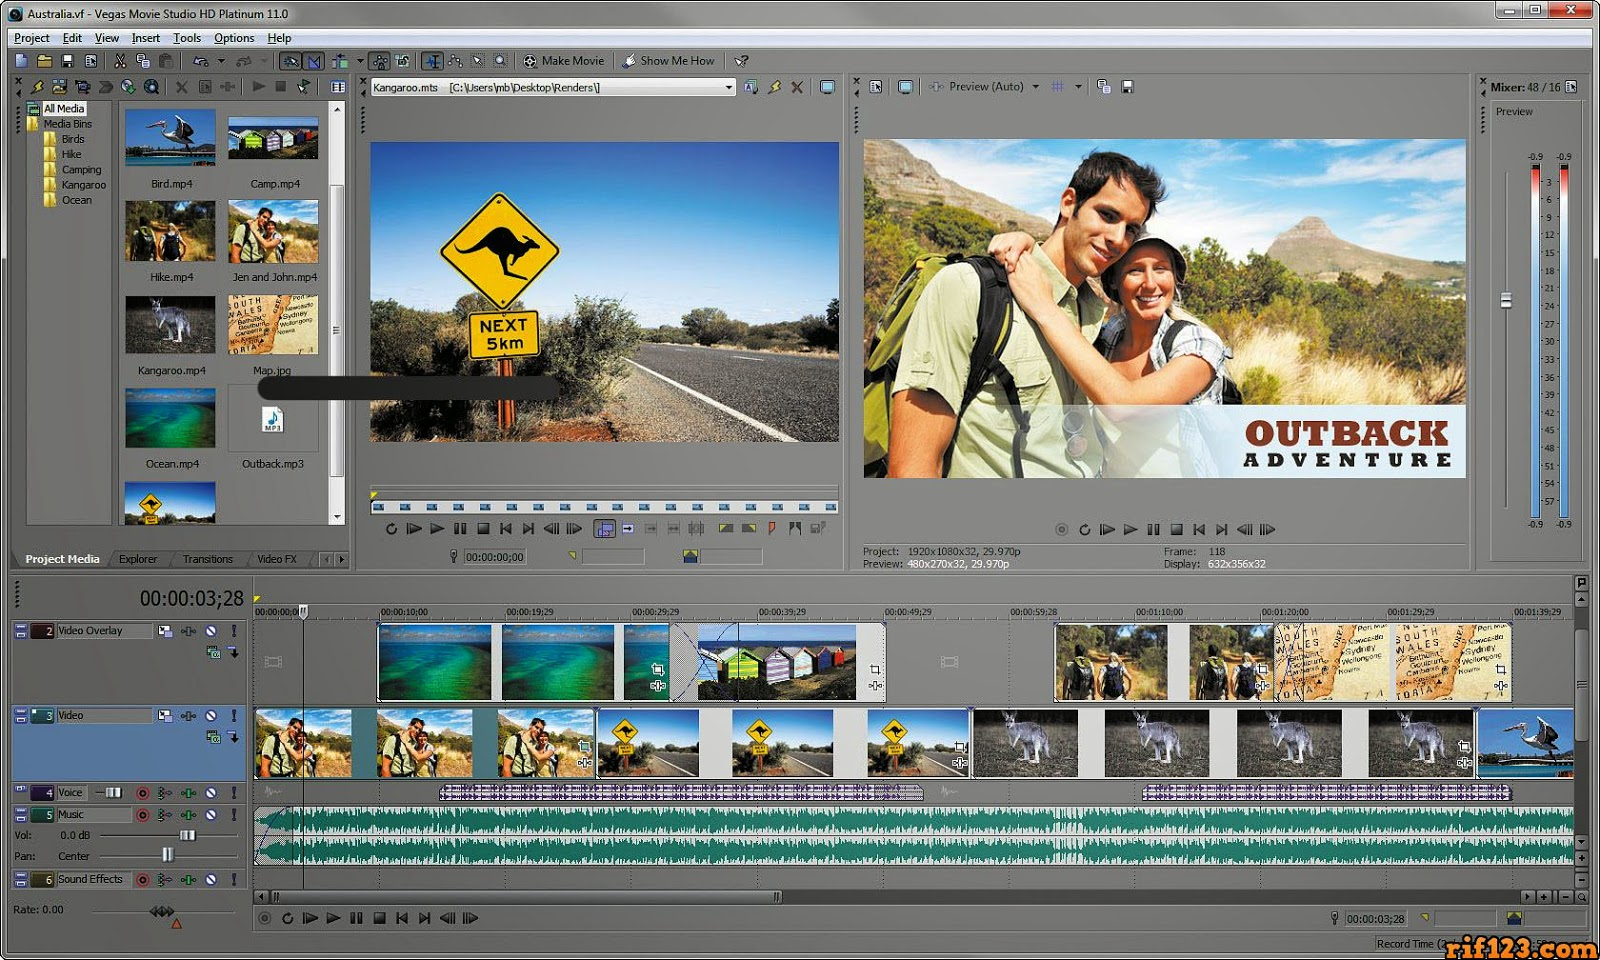 News: magix announces new era for video editing with release of vegas pro 14